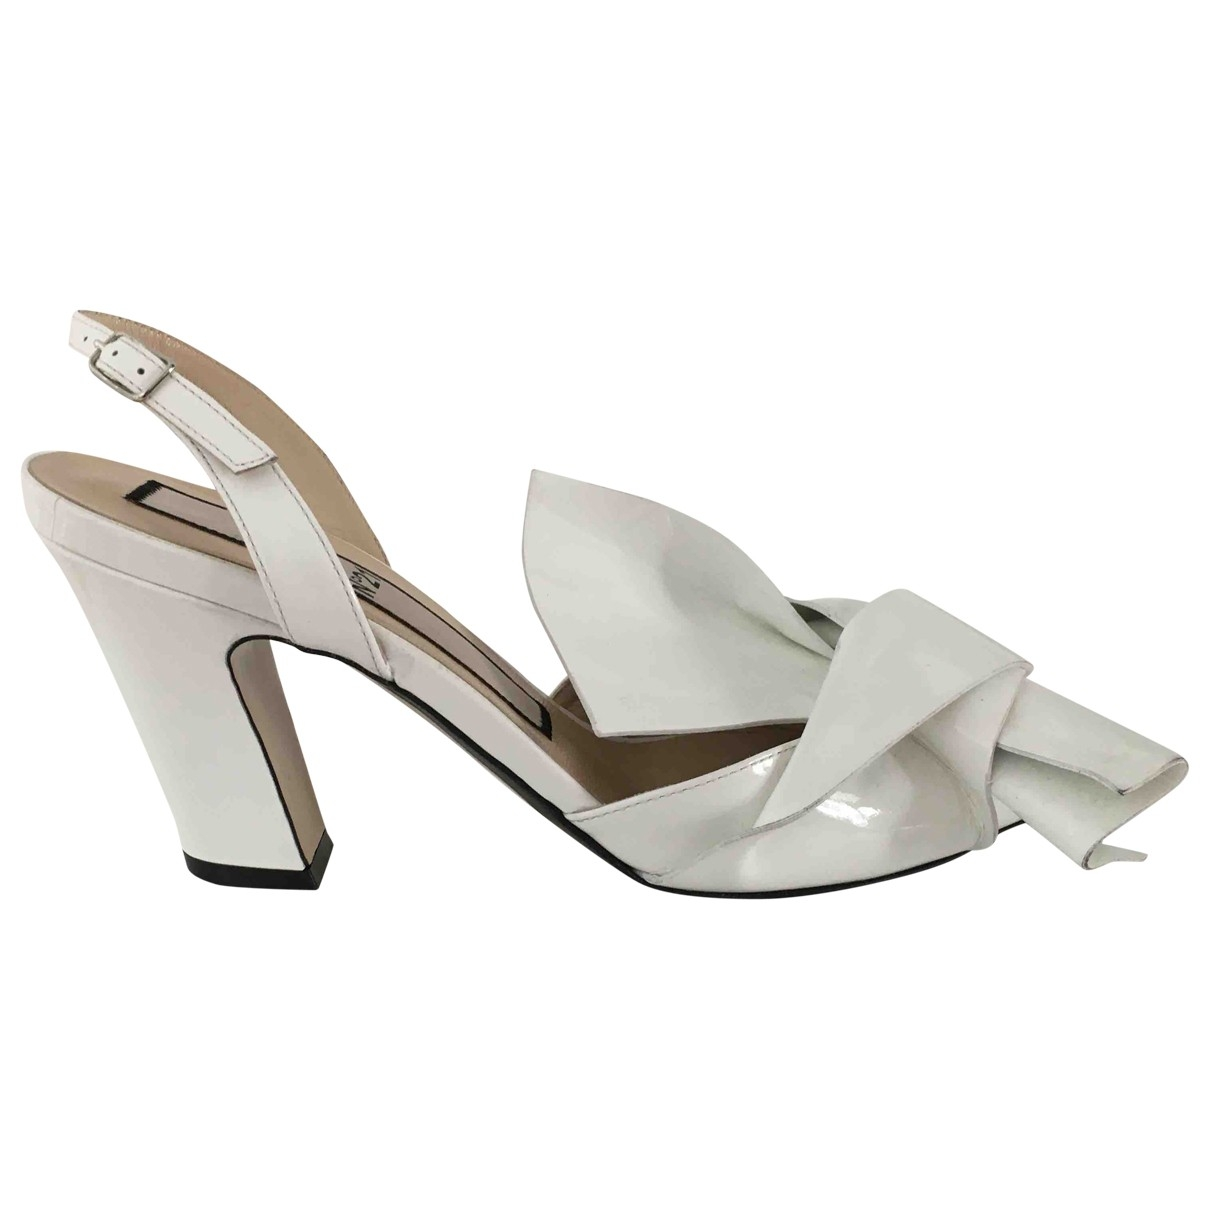 N°21 \N White Patent leather Sandals for Women 38 EU